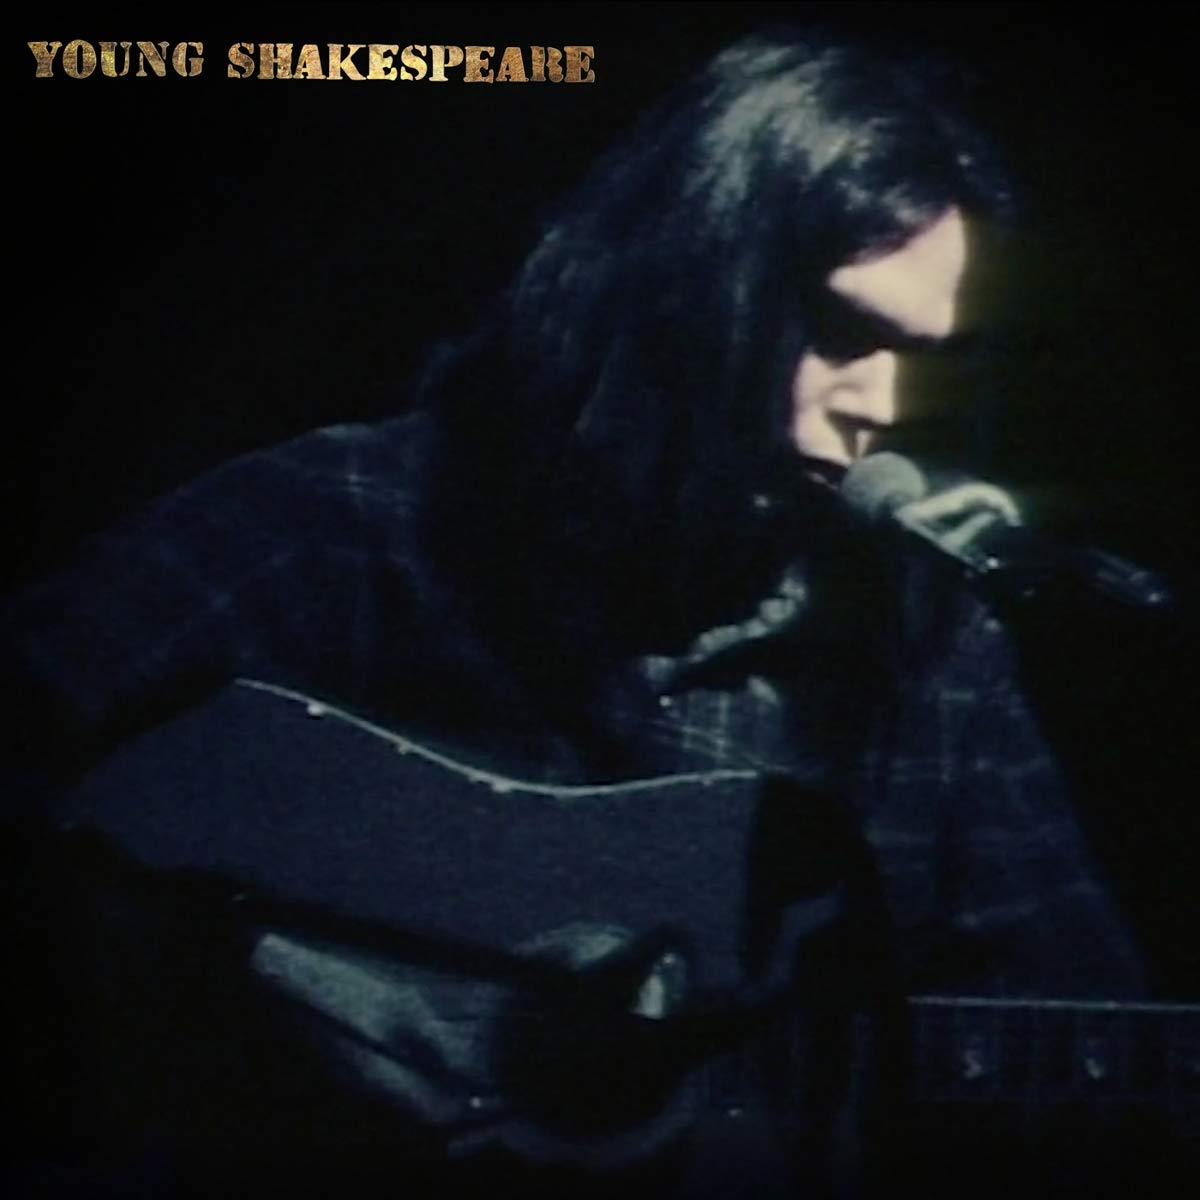 Neil Young - Young Shakespeare (2021) [FLAC] Download